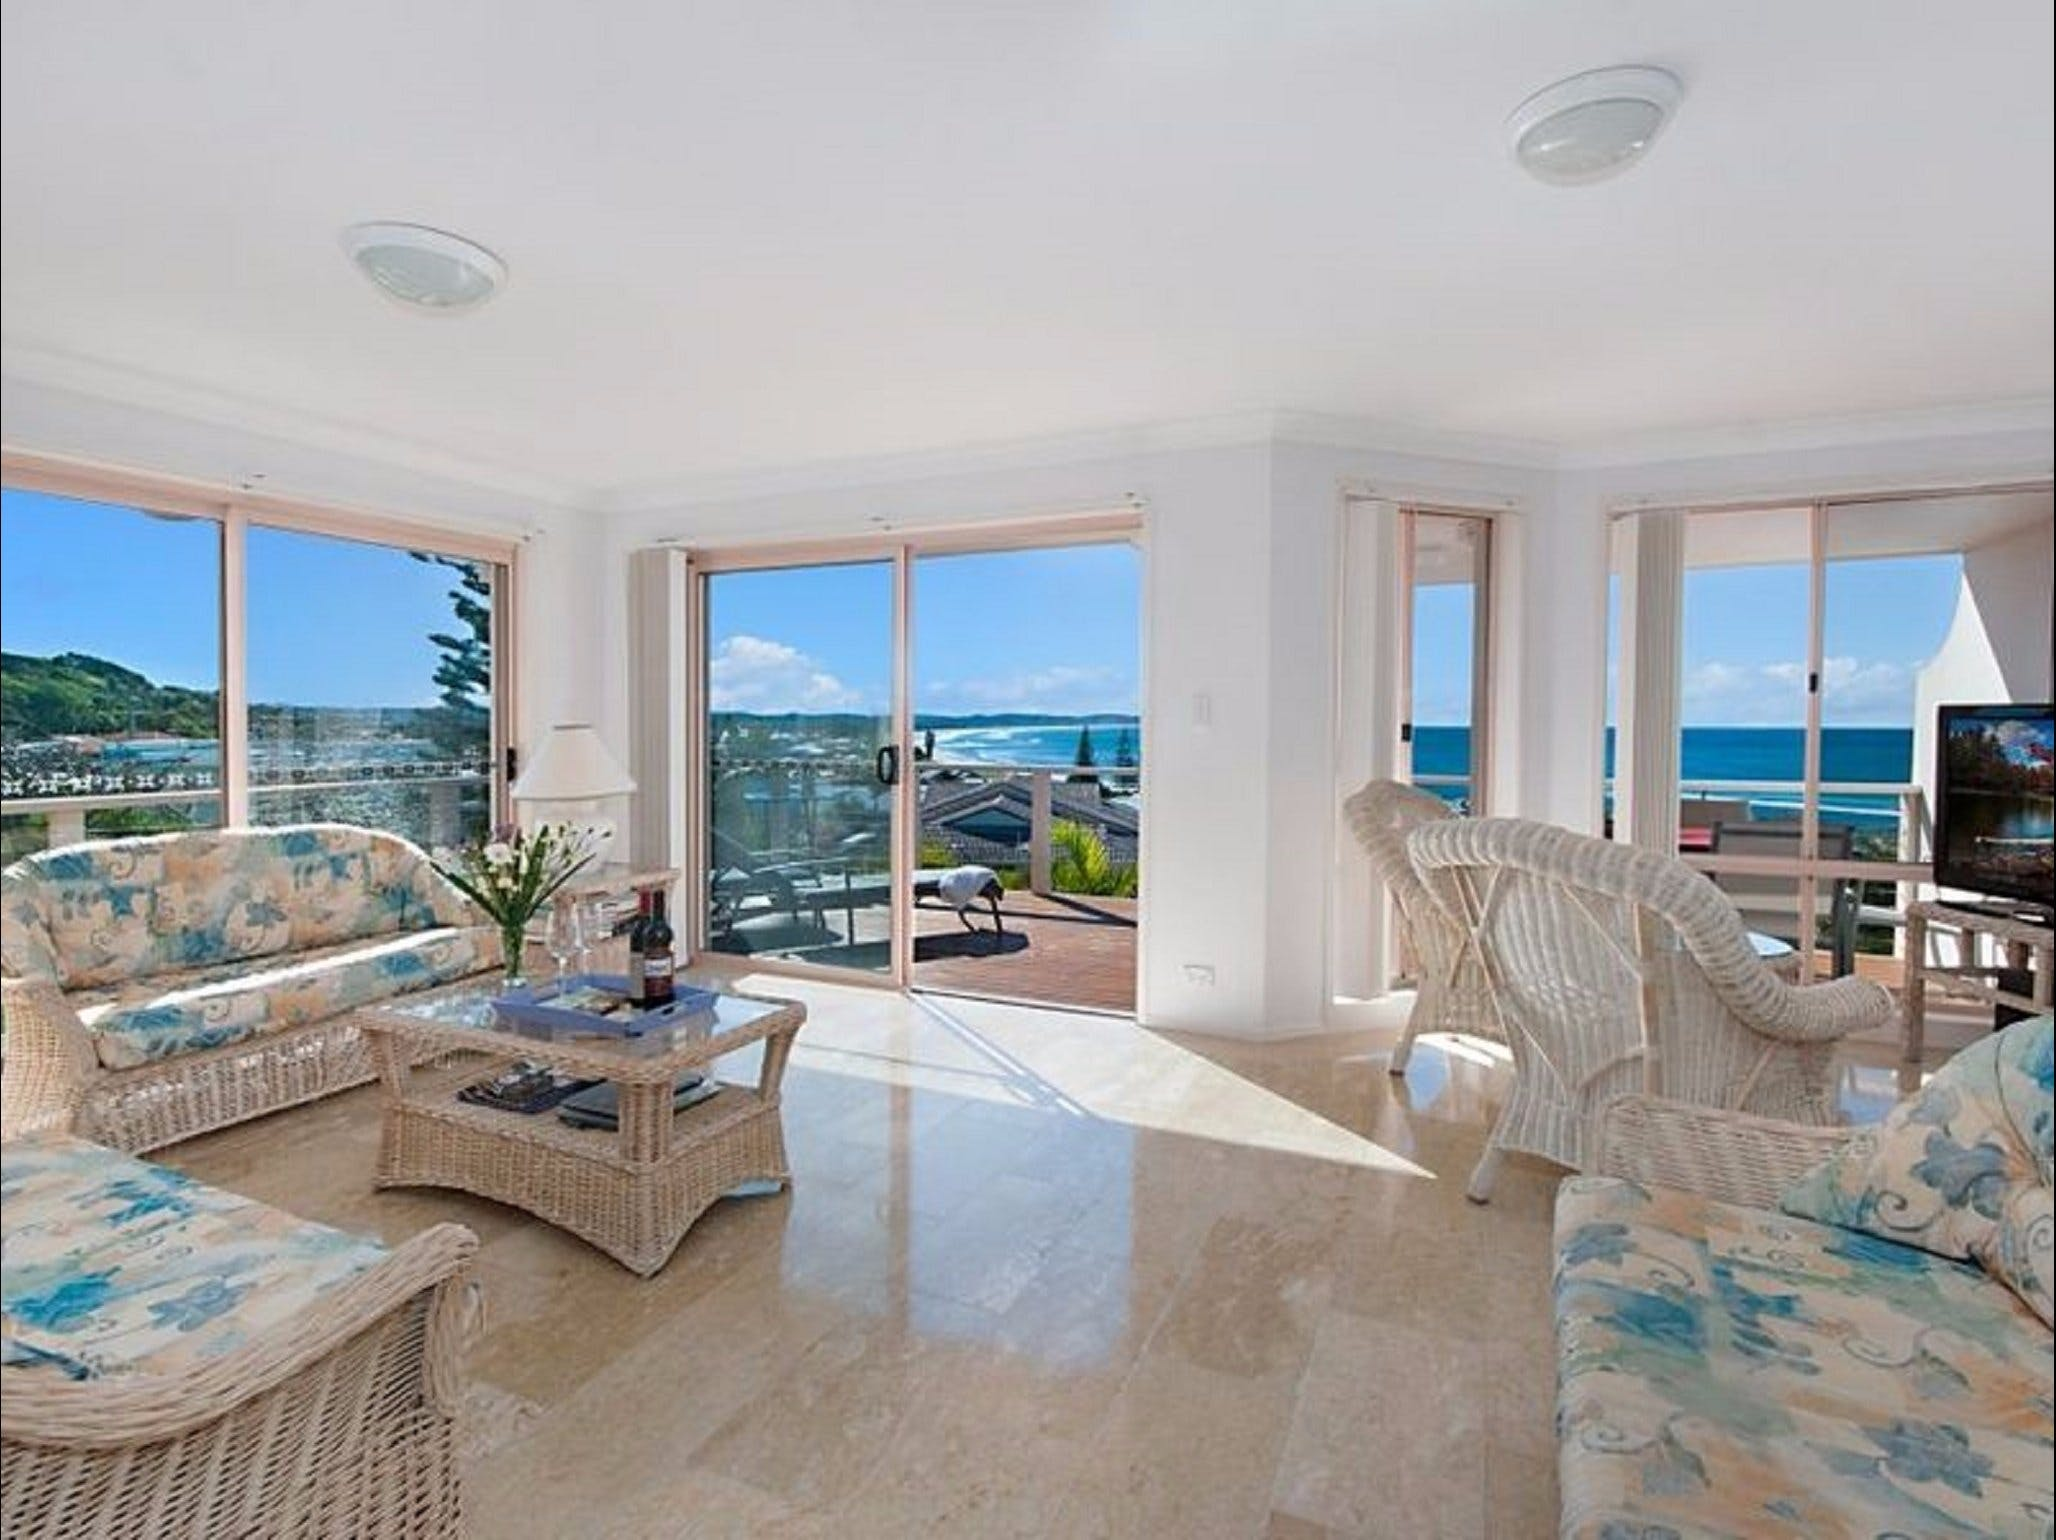 Pacific Rose - Coogee Beach Accommodation